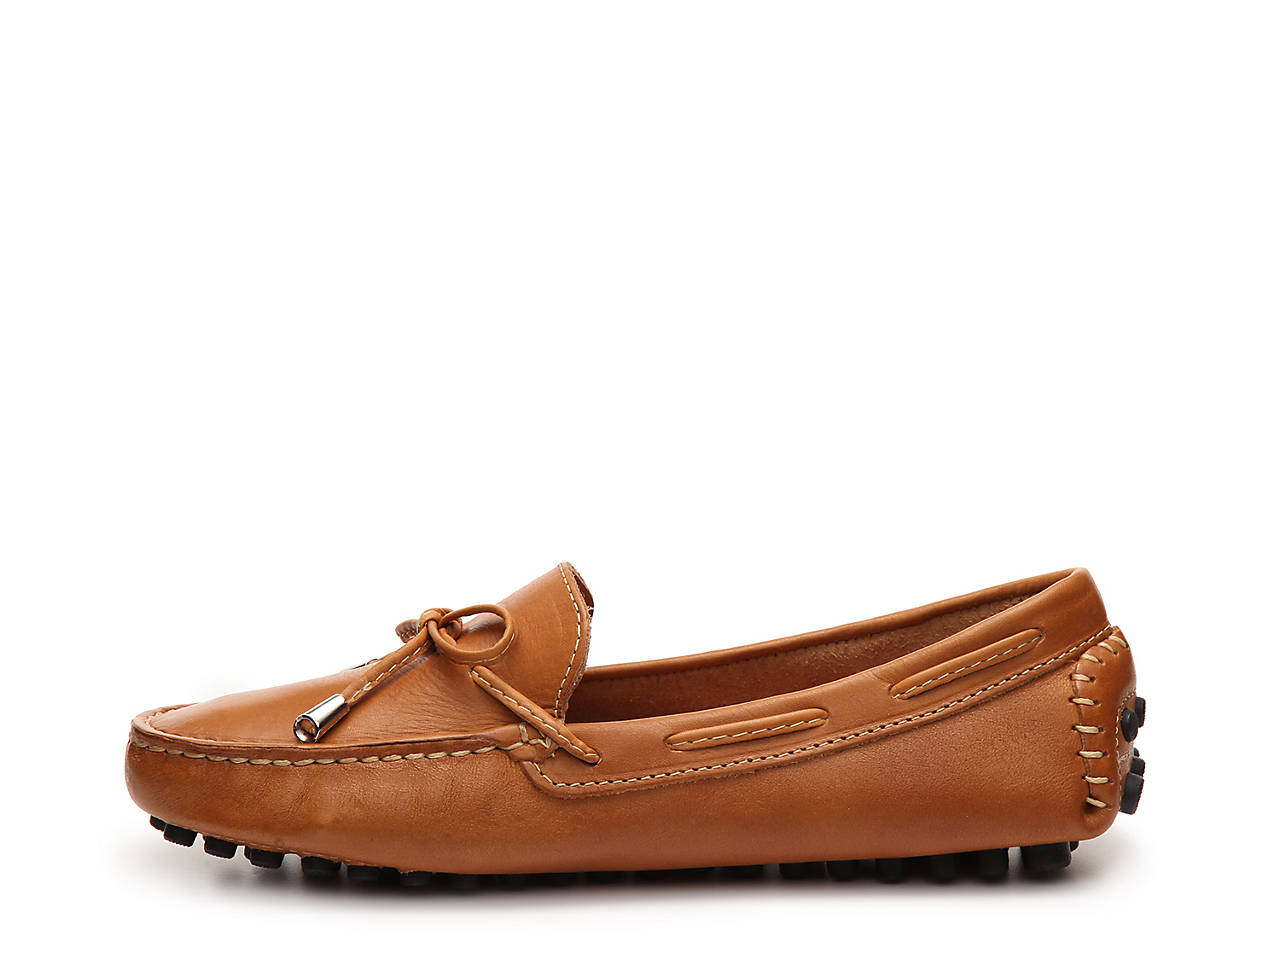 04f28aaede6 Mercanti Fiorentini Leather String Tie Loafer Women s Shoes